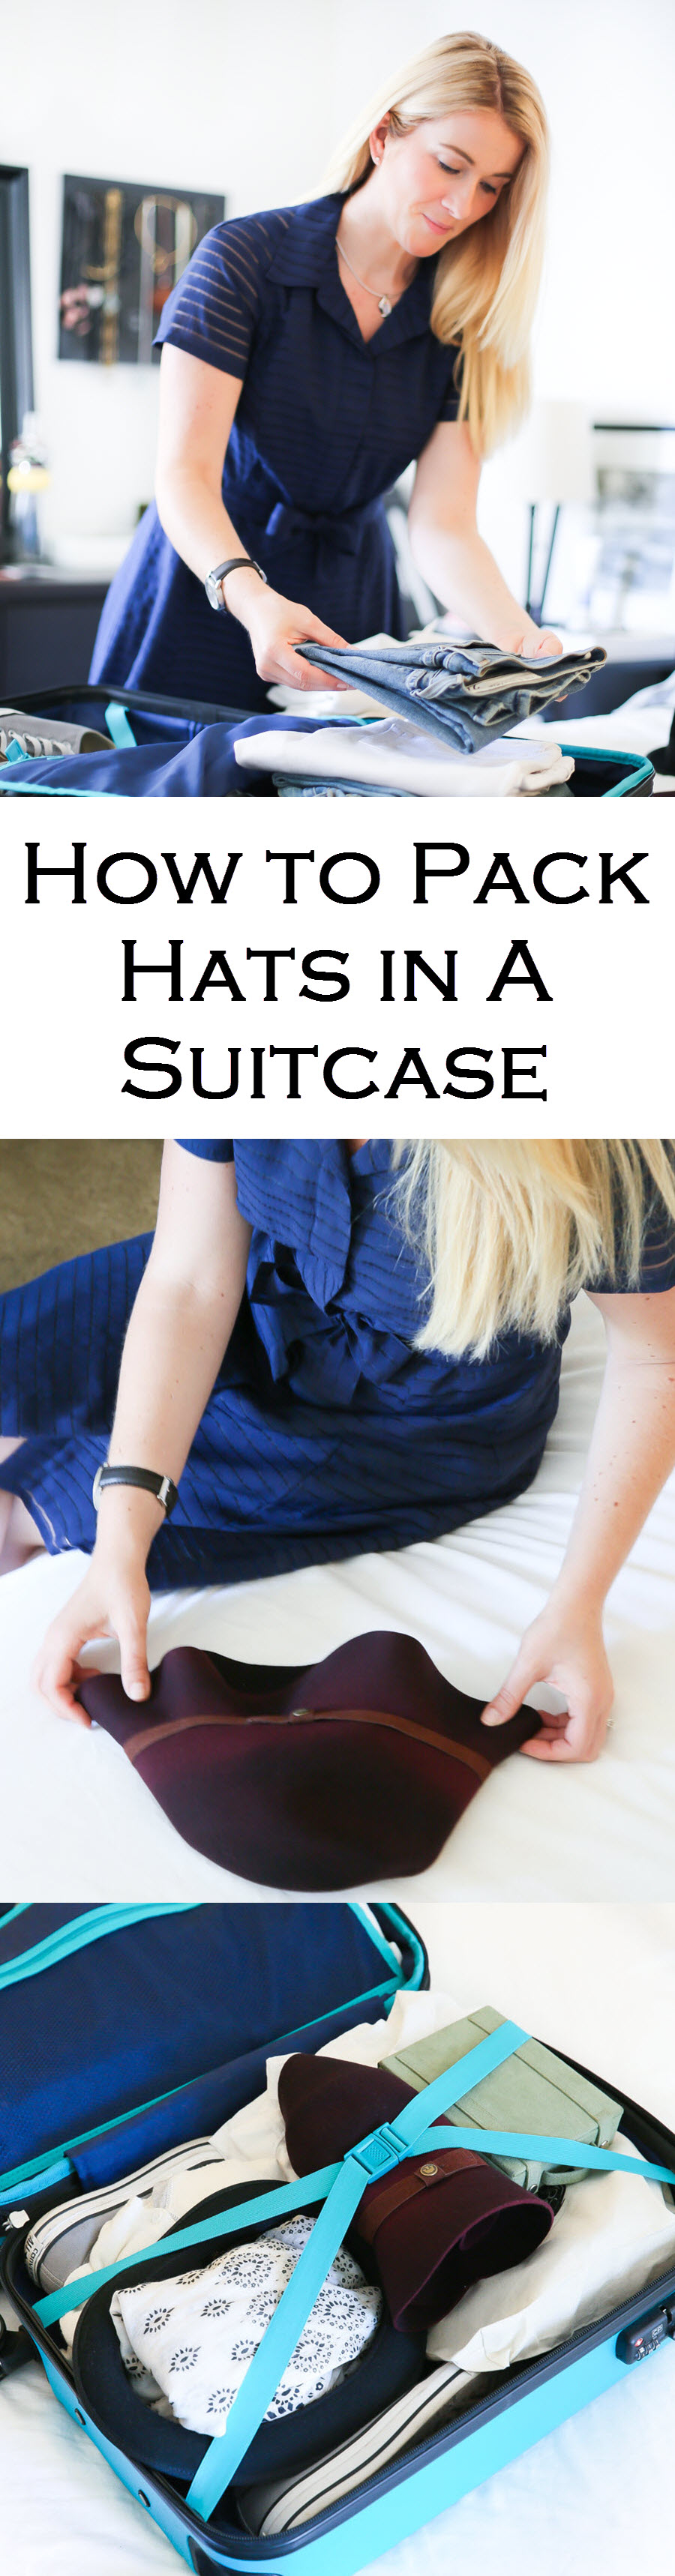 How to Pack Hats in a Suitcase for Travel - Goorin Bros.